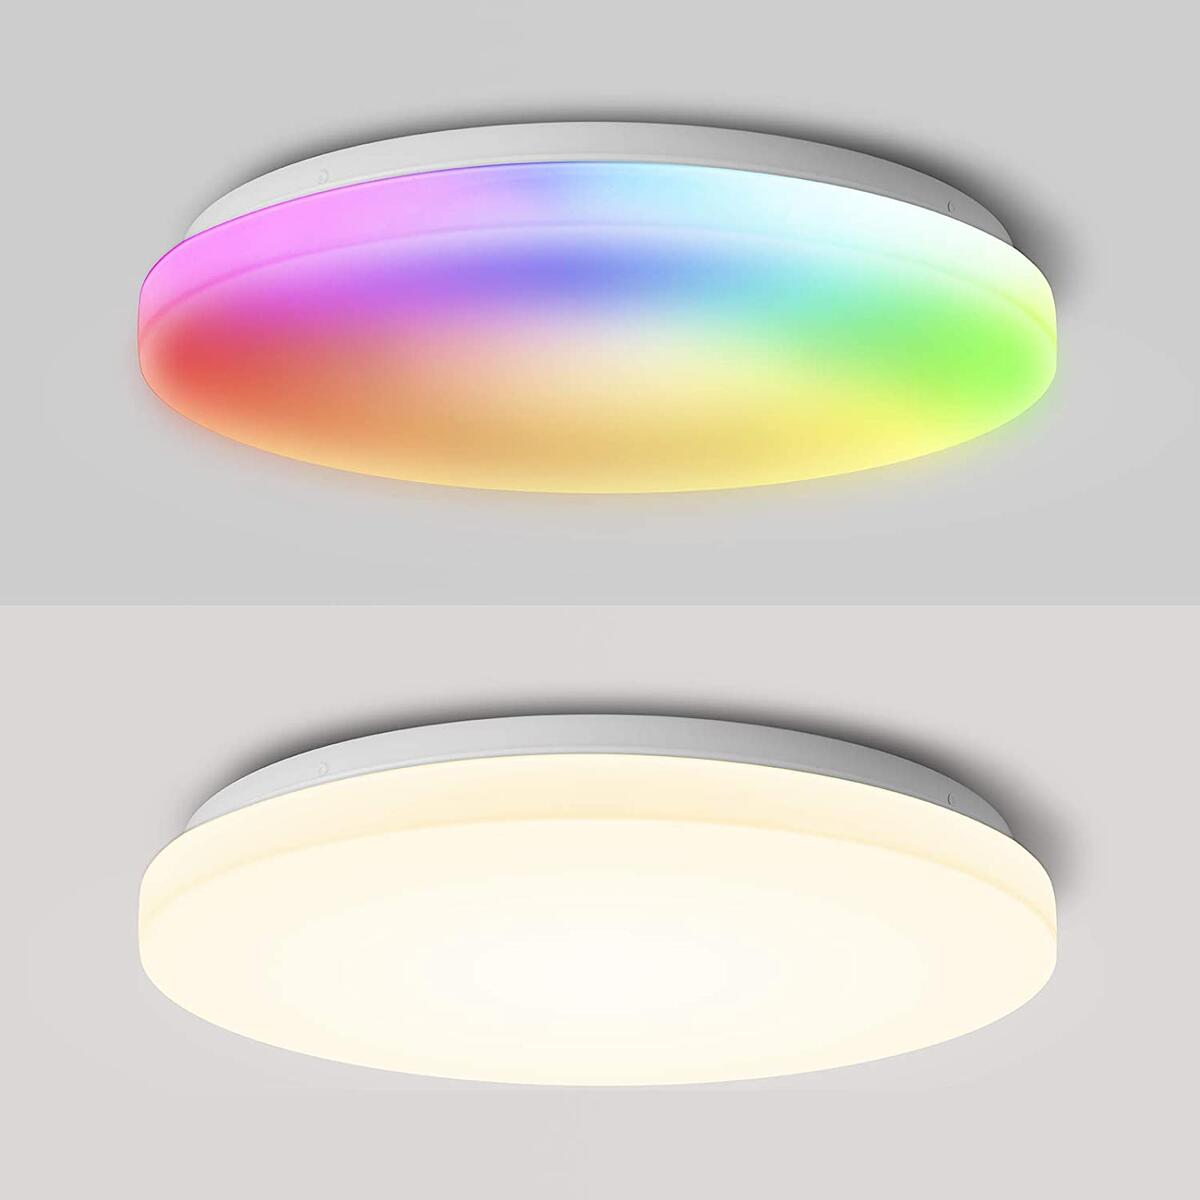 Smart Ceiling Light Flush Mount, Wixann Led WiFi Morden Ceiling Light Fixture Compatible with Alexa Google Home, 2400LM 2700-6500K Ceiling Lamp for Bedroom Living Room Dining Room,16 Inch 24W